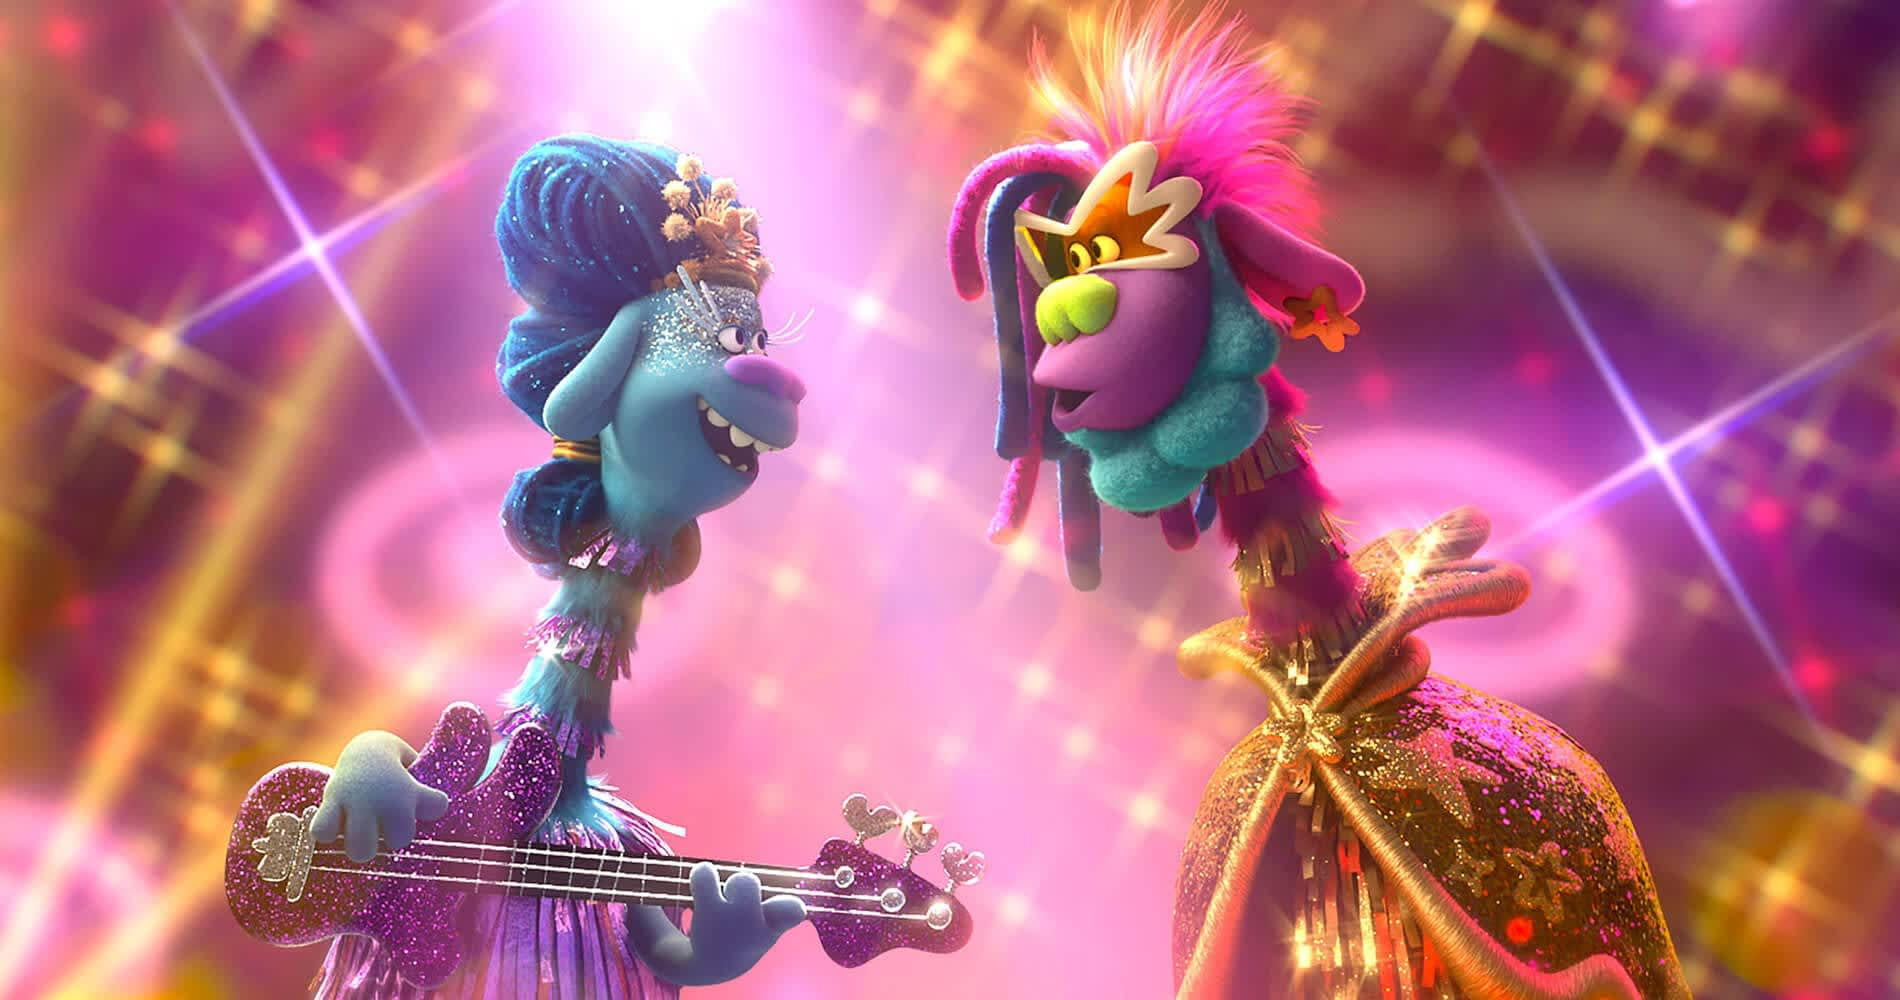 """George Clinton's """"Atomic Dog"""" featured in Trolls World Tour trailer"""